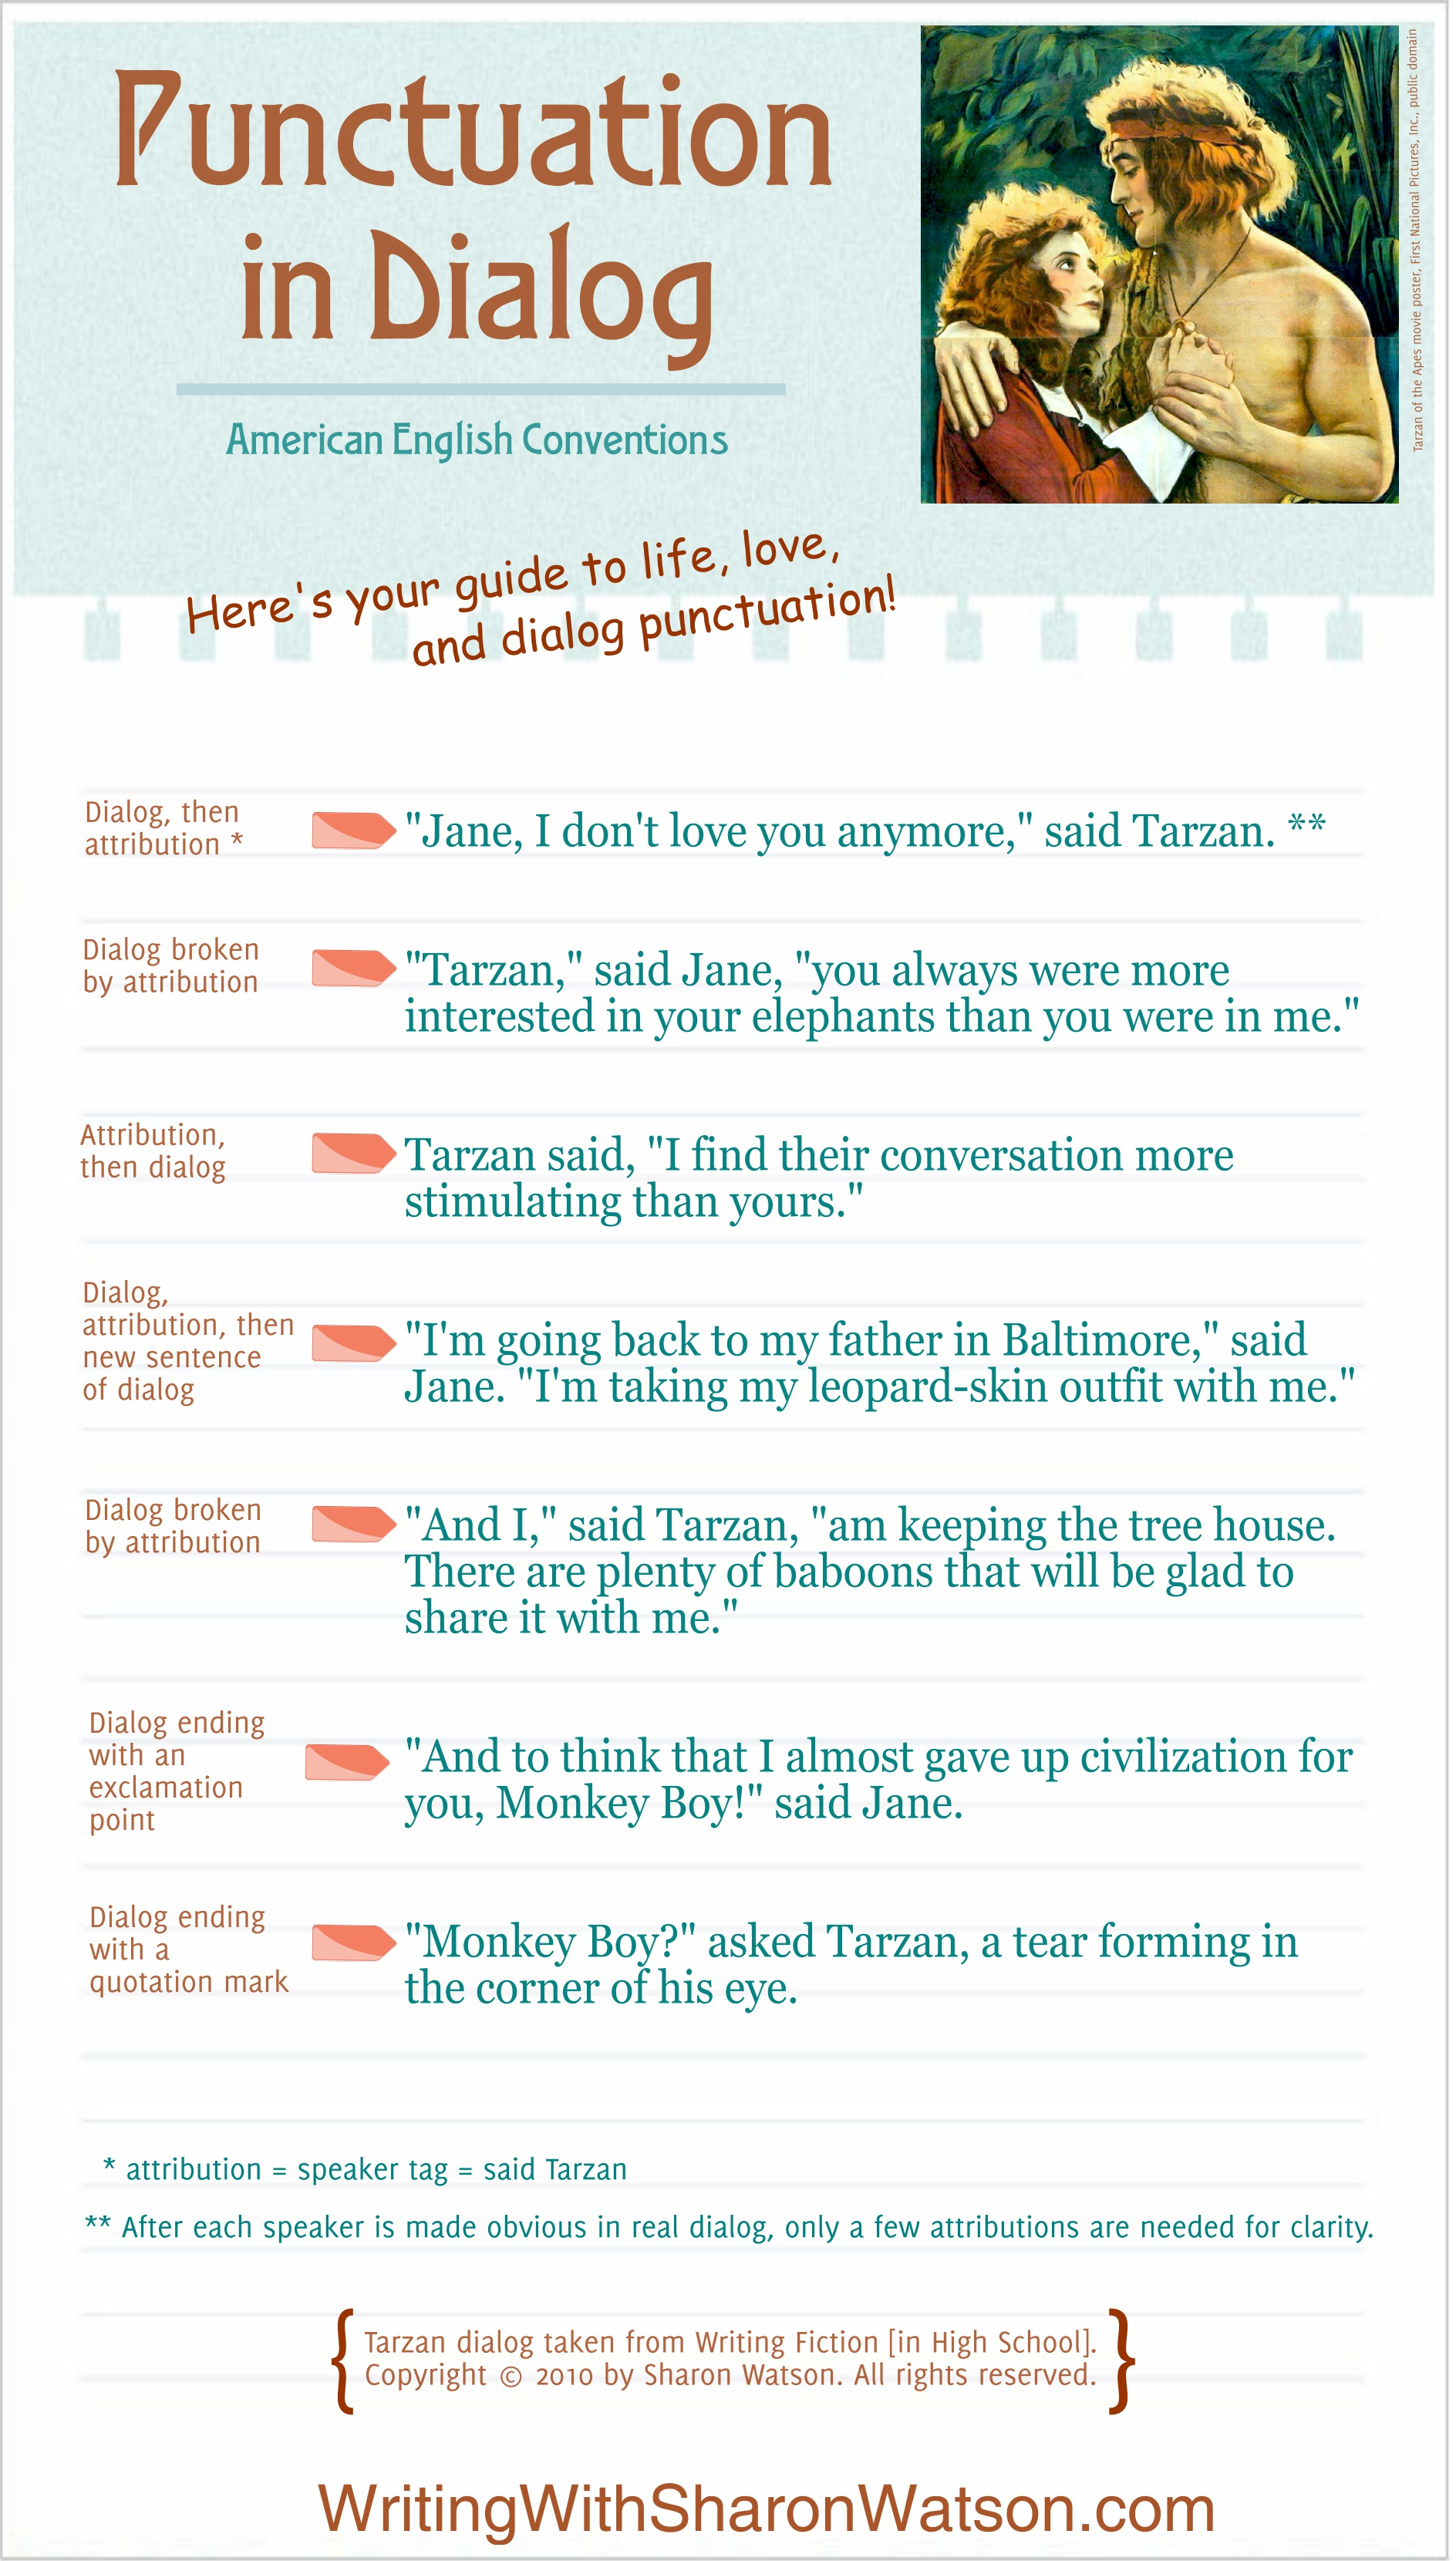 Follow Tarzan and Jane as their spat teaches your students how to punctuate dialog correctly. Complete with goofy infographic and dialog.